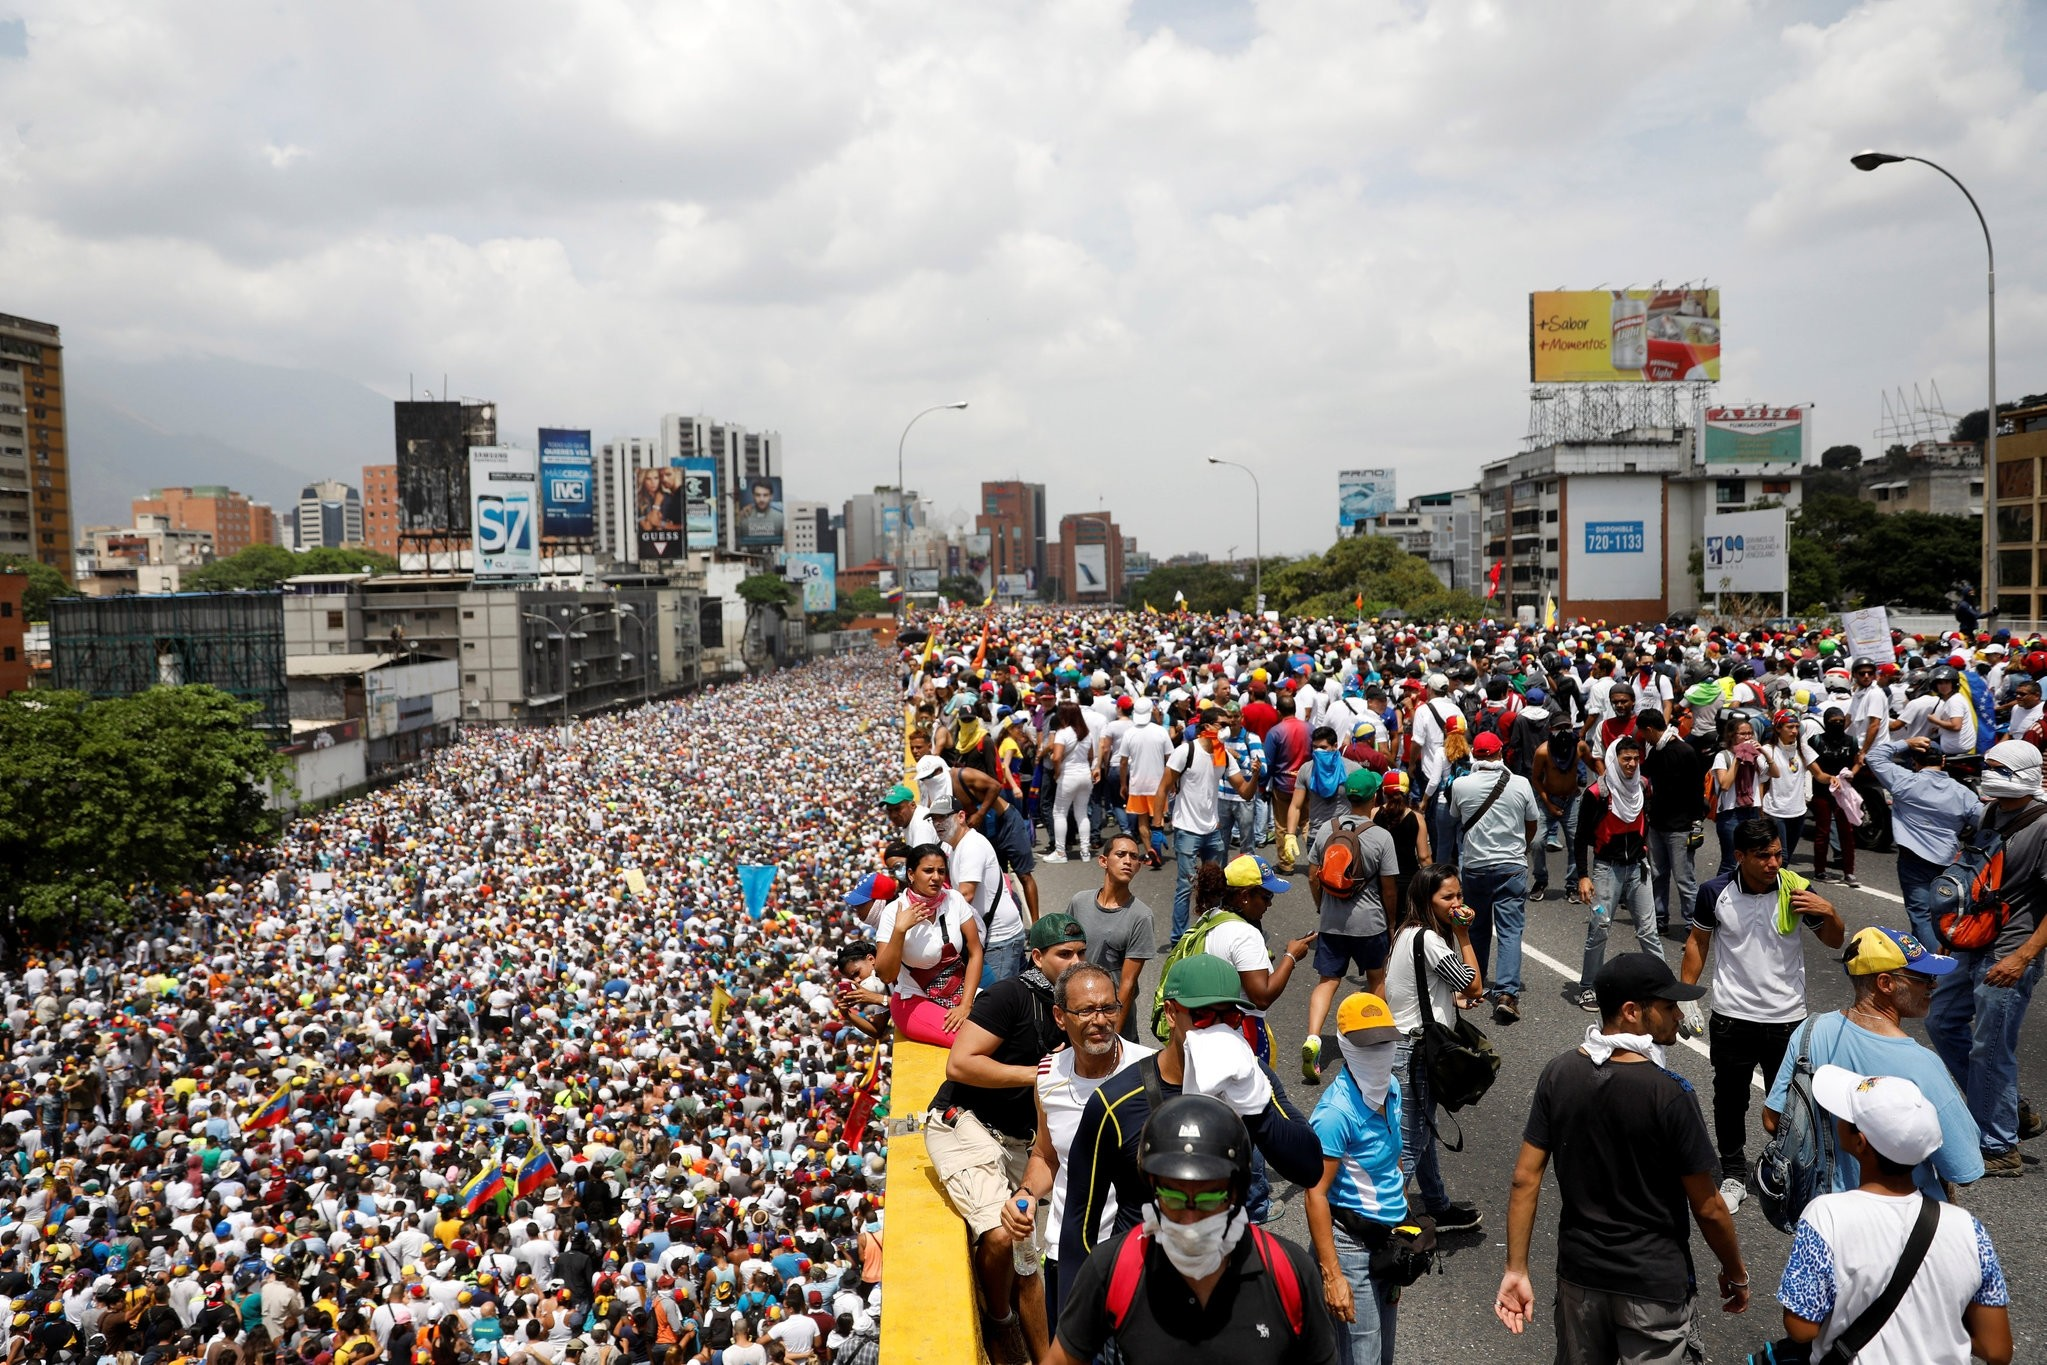 Hundreds of thousands of people march in Venezuela against Maduro. (REUTERS Photo)